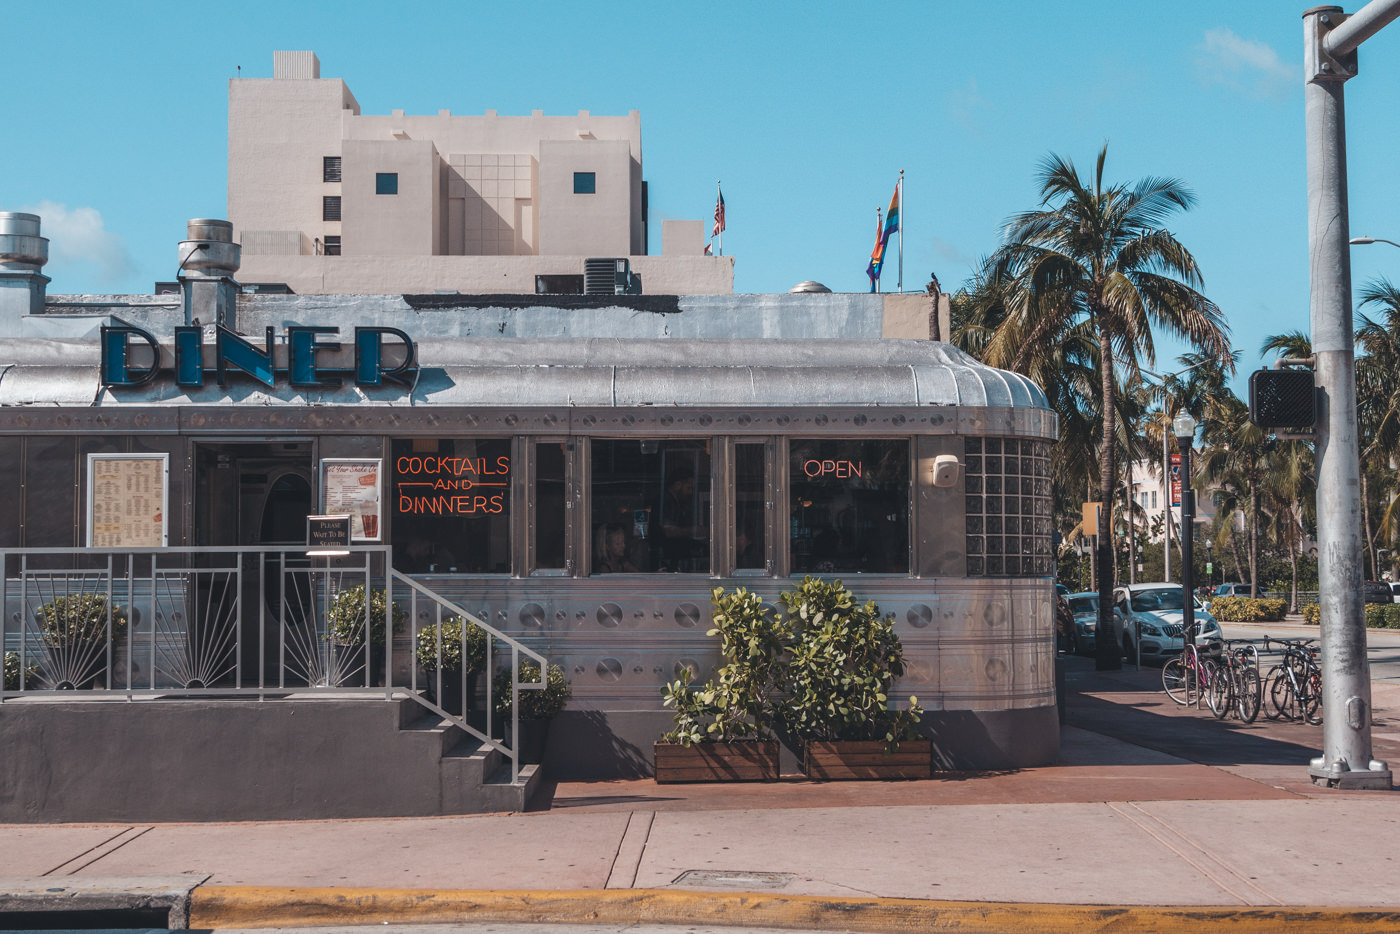 American Diner in Miami South Beach